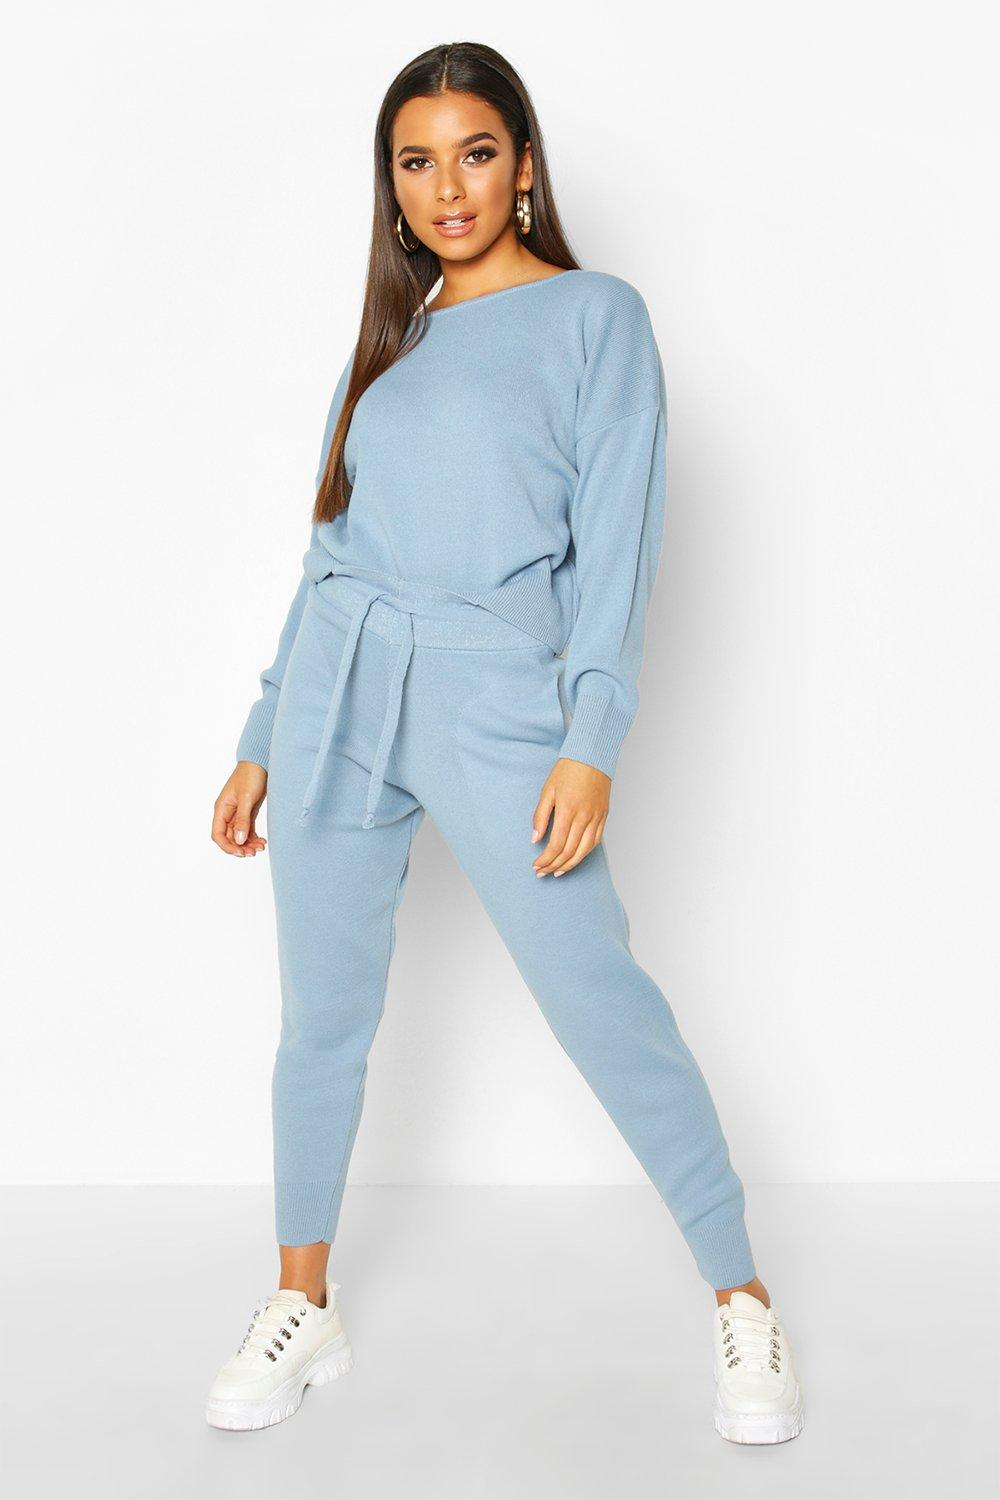 Womens Slash Neck Cropped Knitted Set - baby blue - S, Baby Blue - Boohoo.com